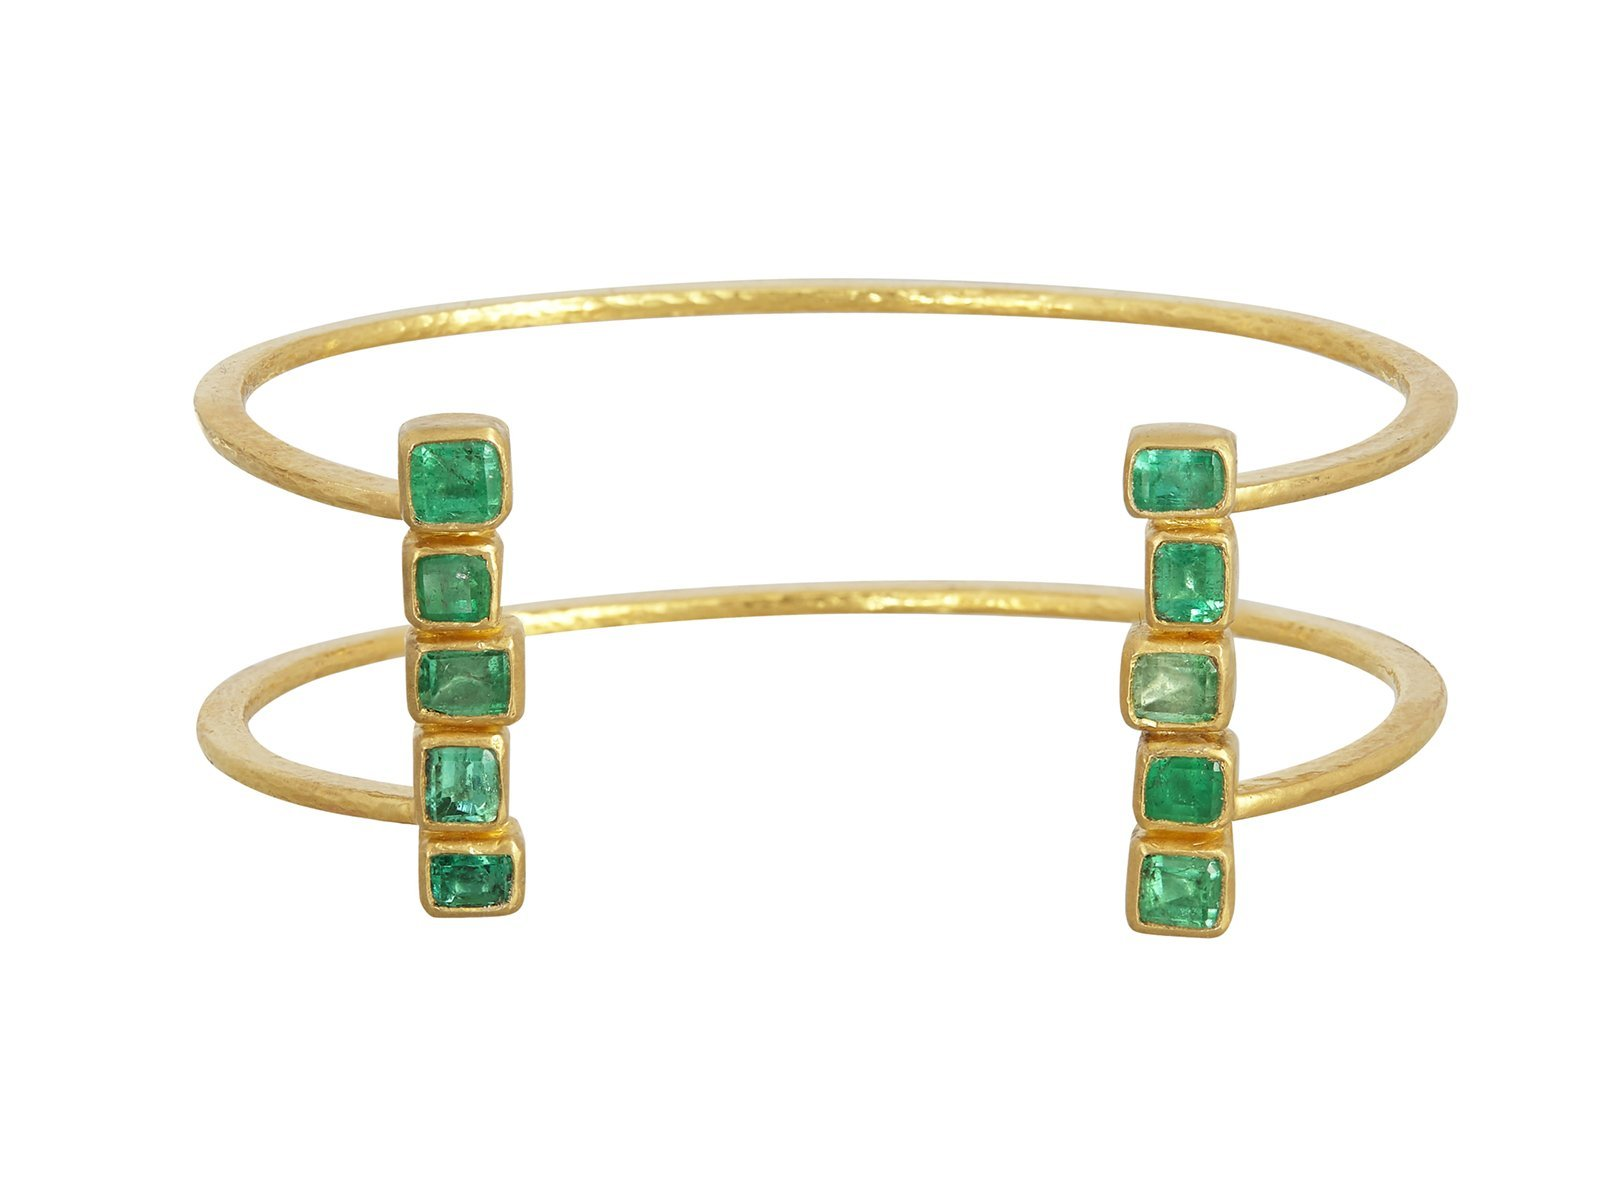 Gurhan 24K Yellow Gold 3.62cts  Emeralds Gold Bangle with Stones CB2-LE-5CEM